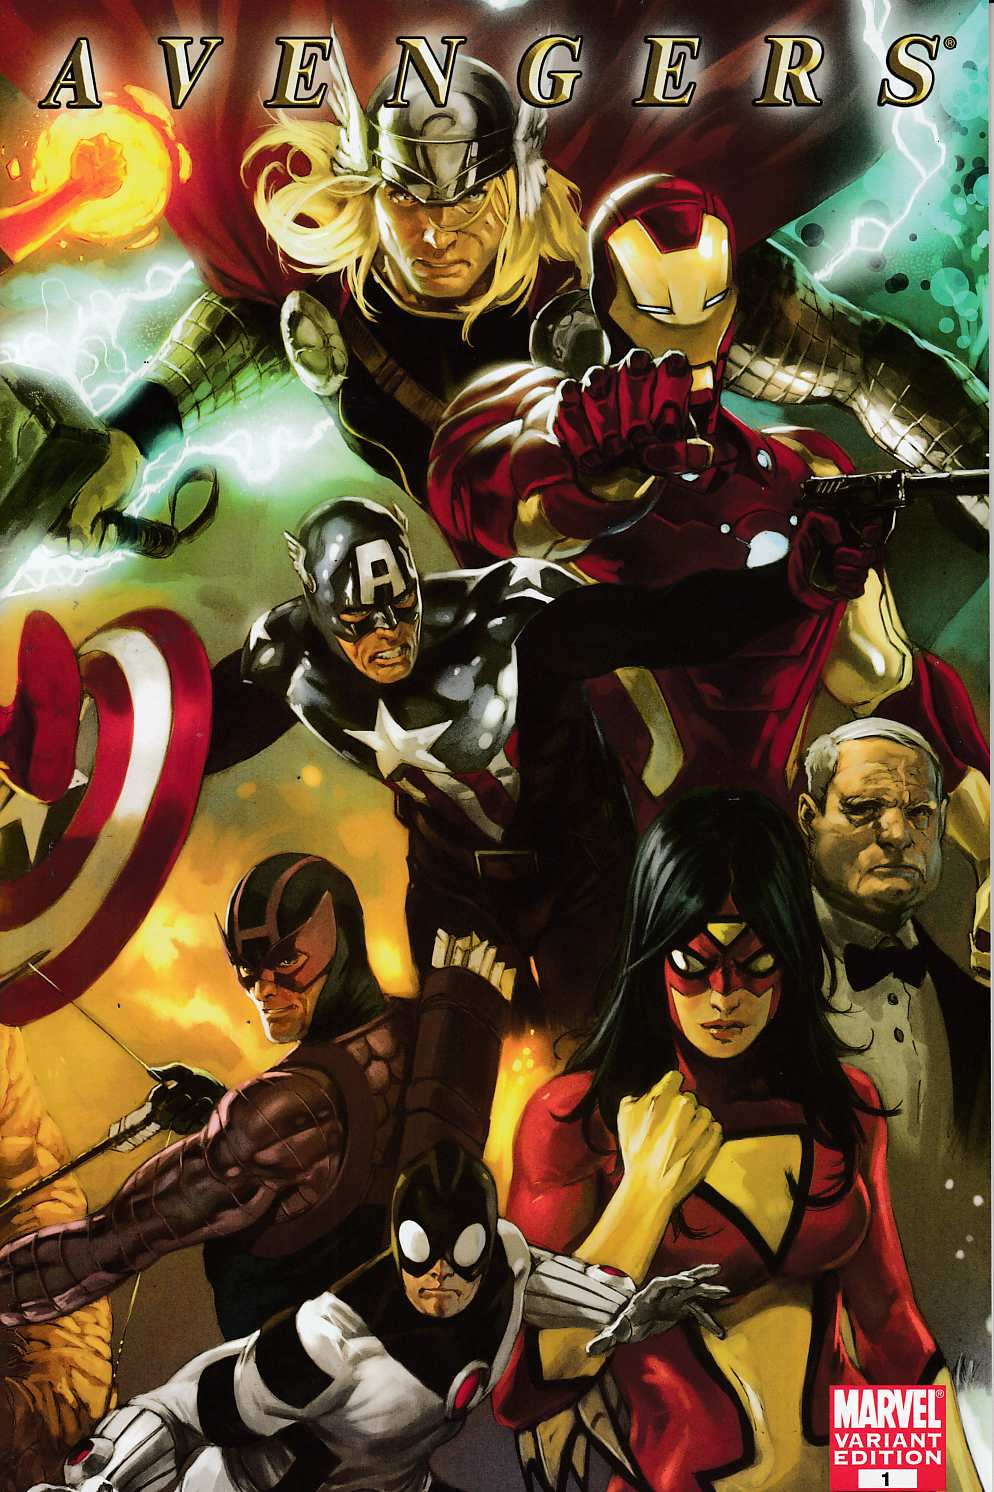 Avengers #1 Djurdjevic Variant Cover Very Fine (8.0) [Marvel Comic]